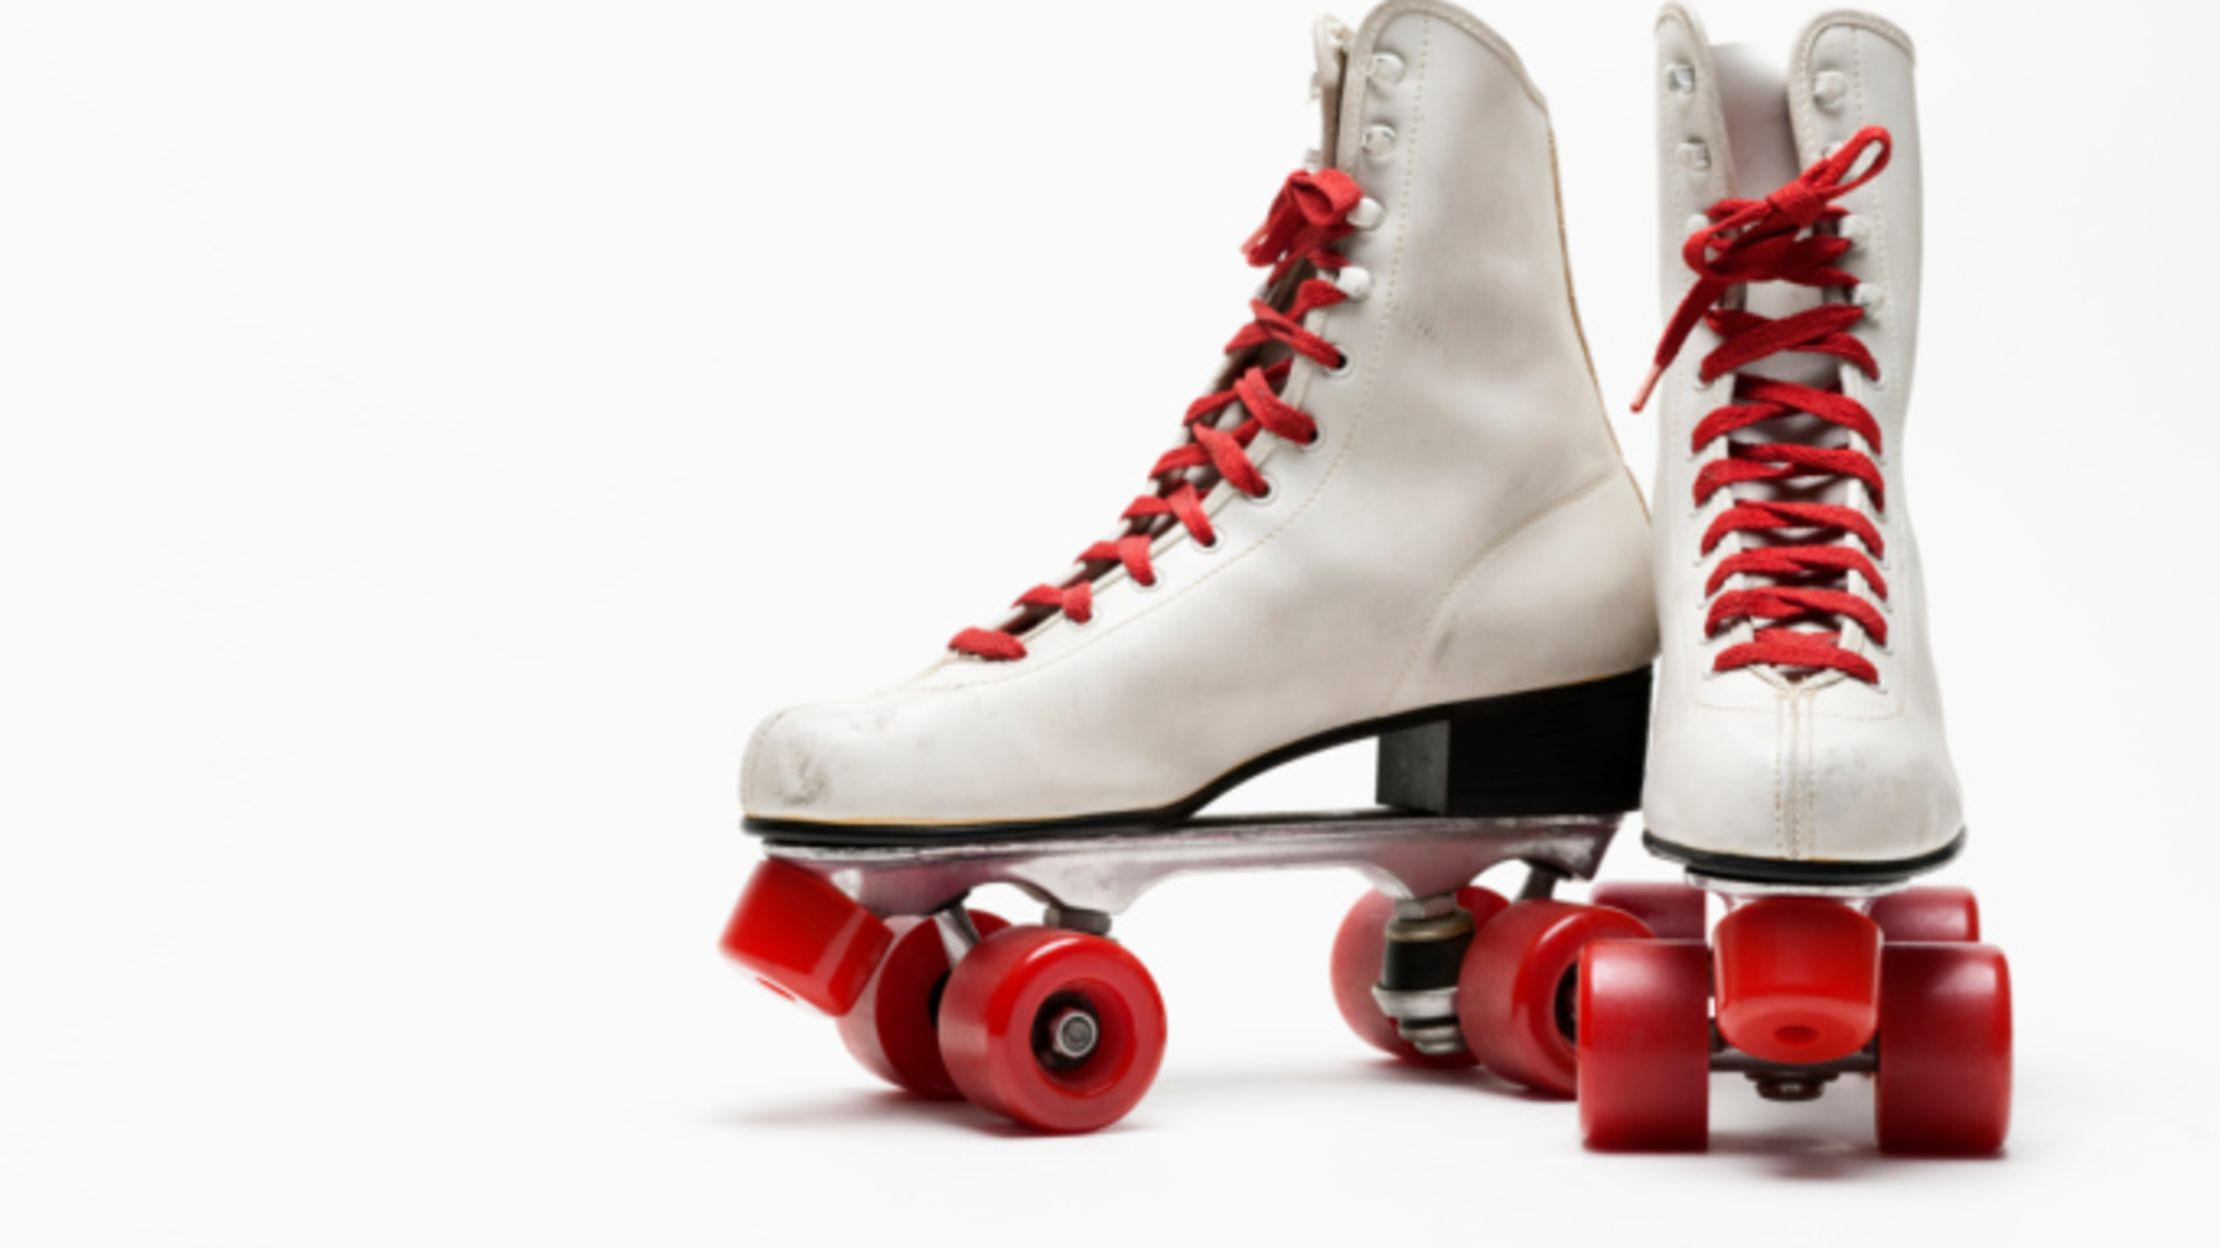 11 Things You Might Not Know About Roller Skates | Mental